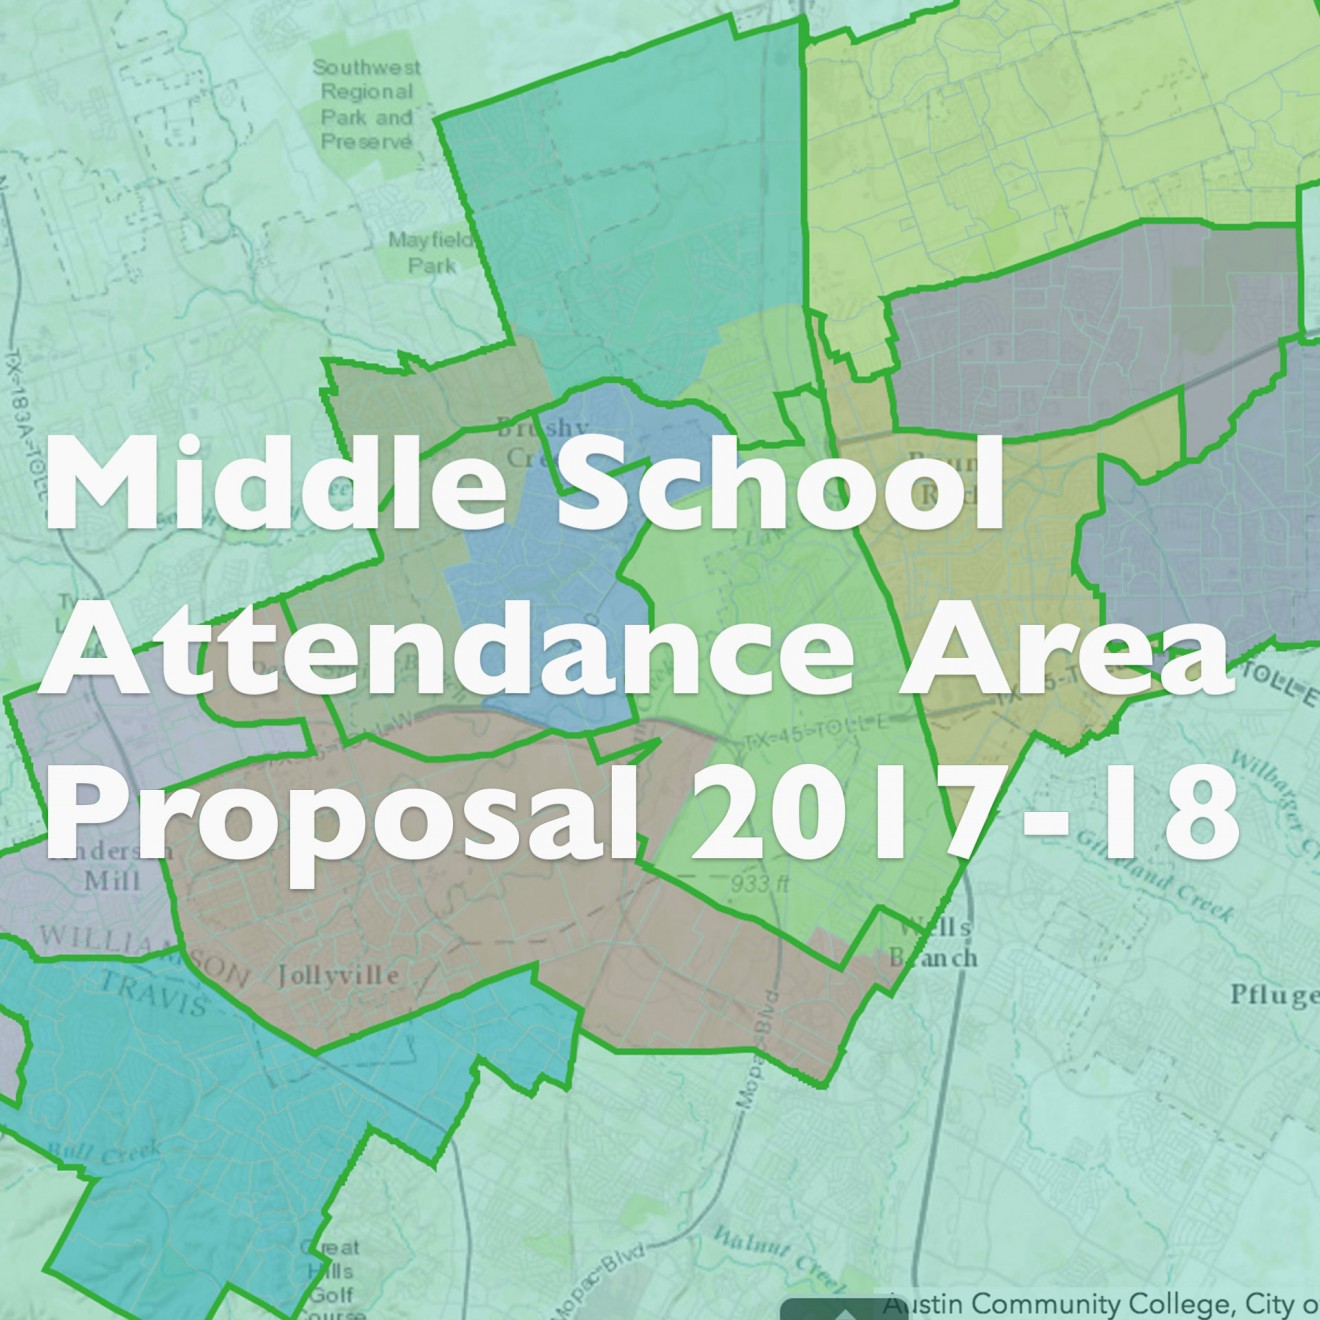 District prepares middle school attendance area proposal for October 20 Board meeting